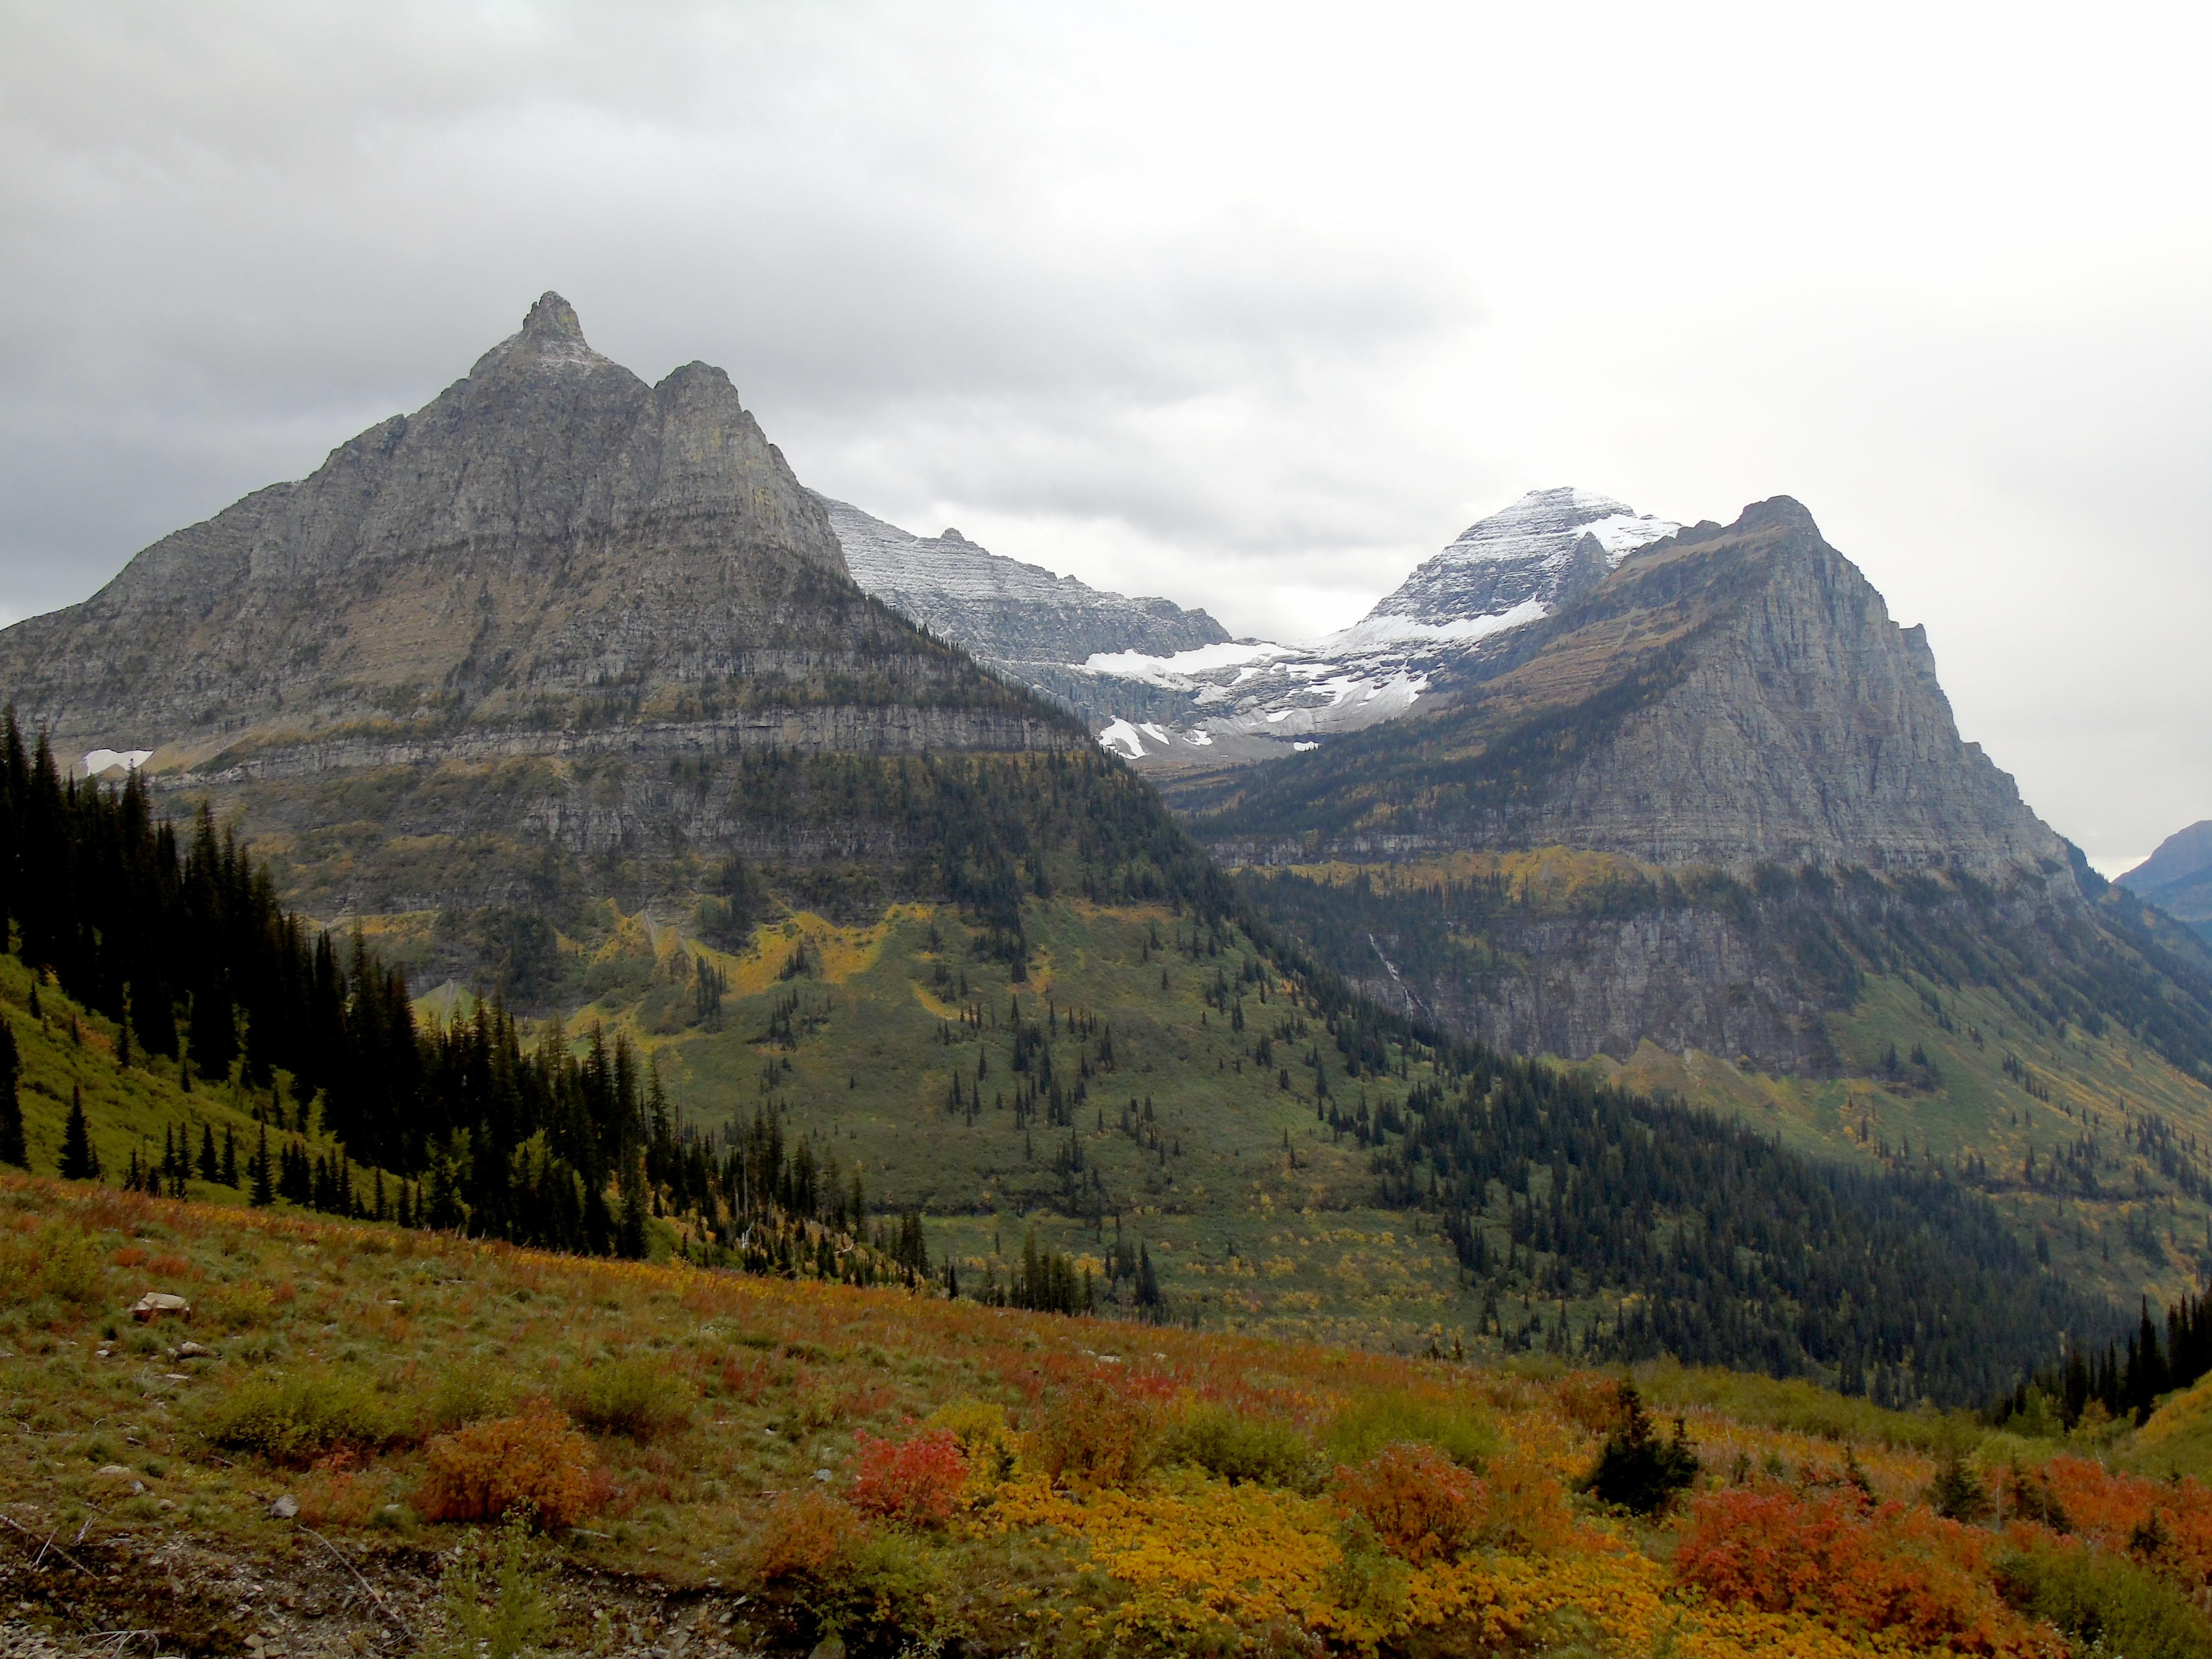 Fall colors along Going-to-the-Sun Road in Glacier National Park in late September.